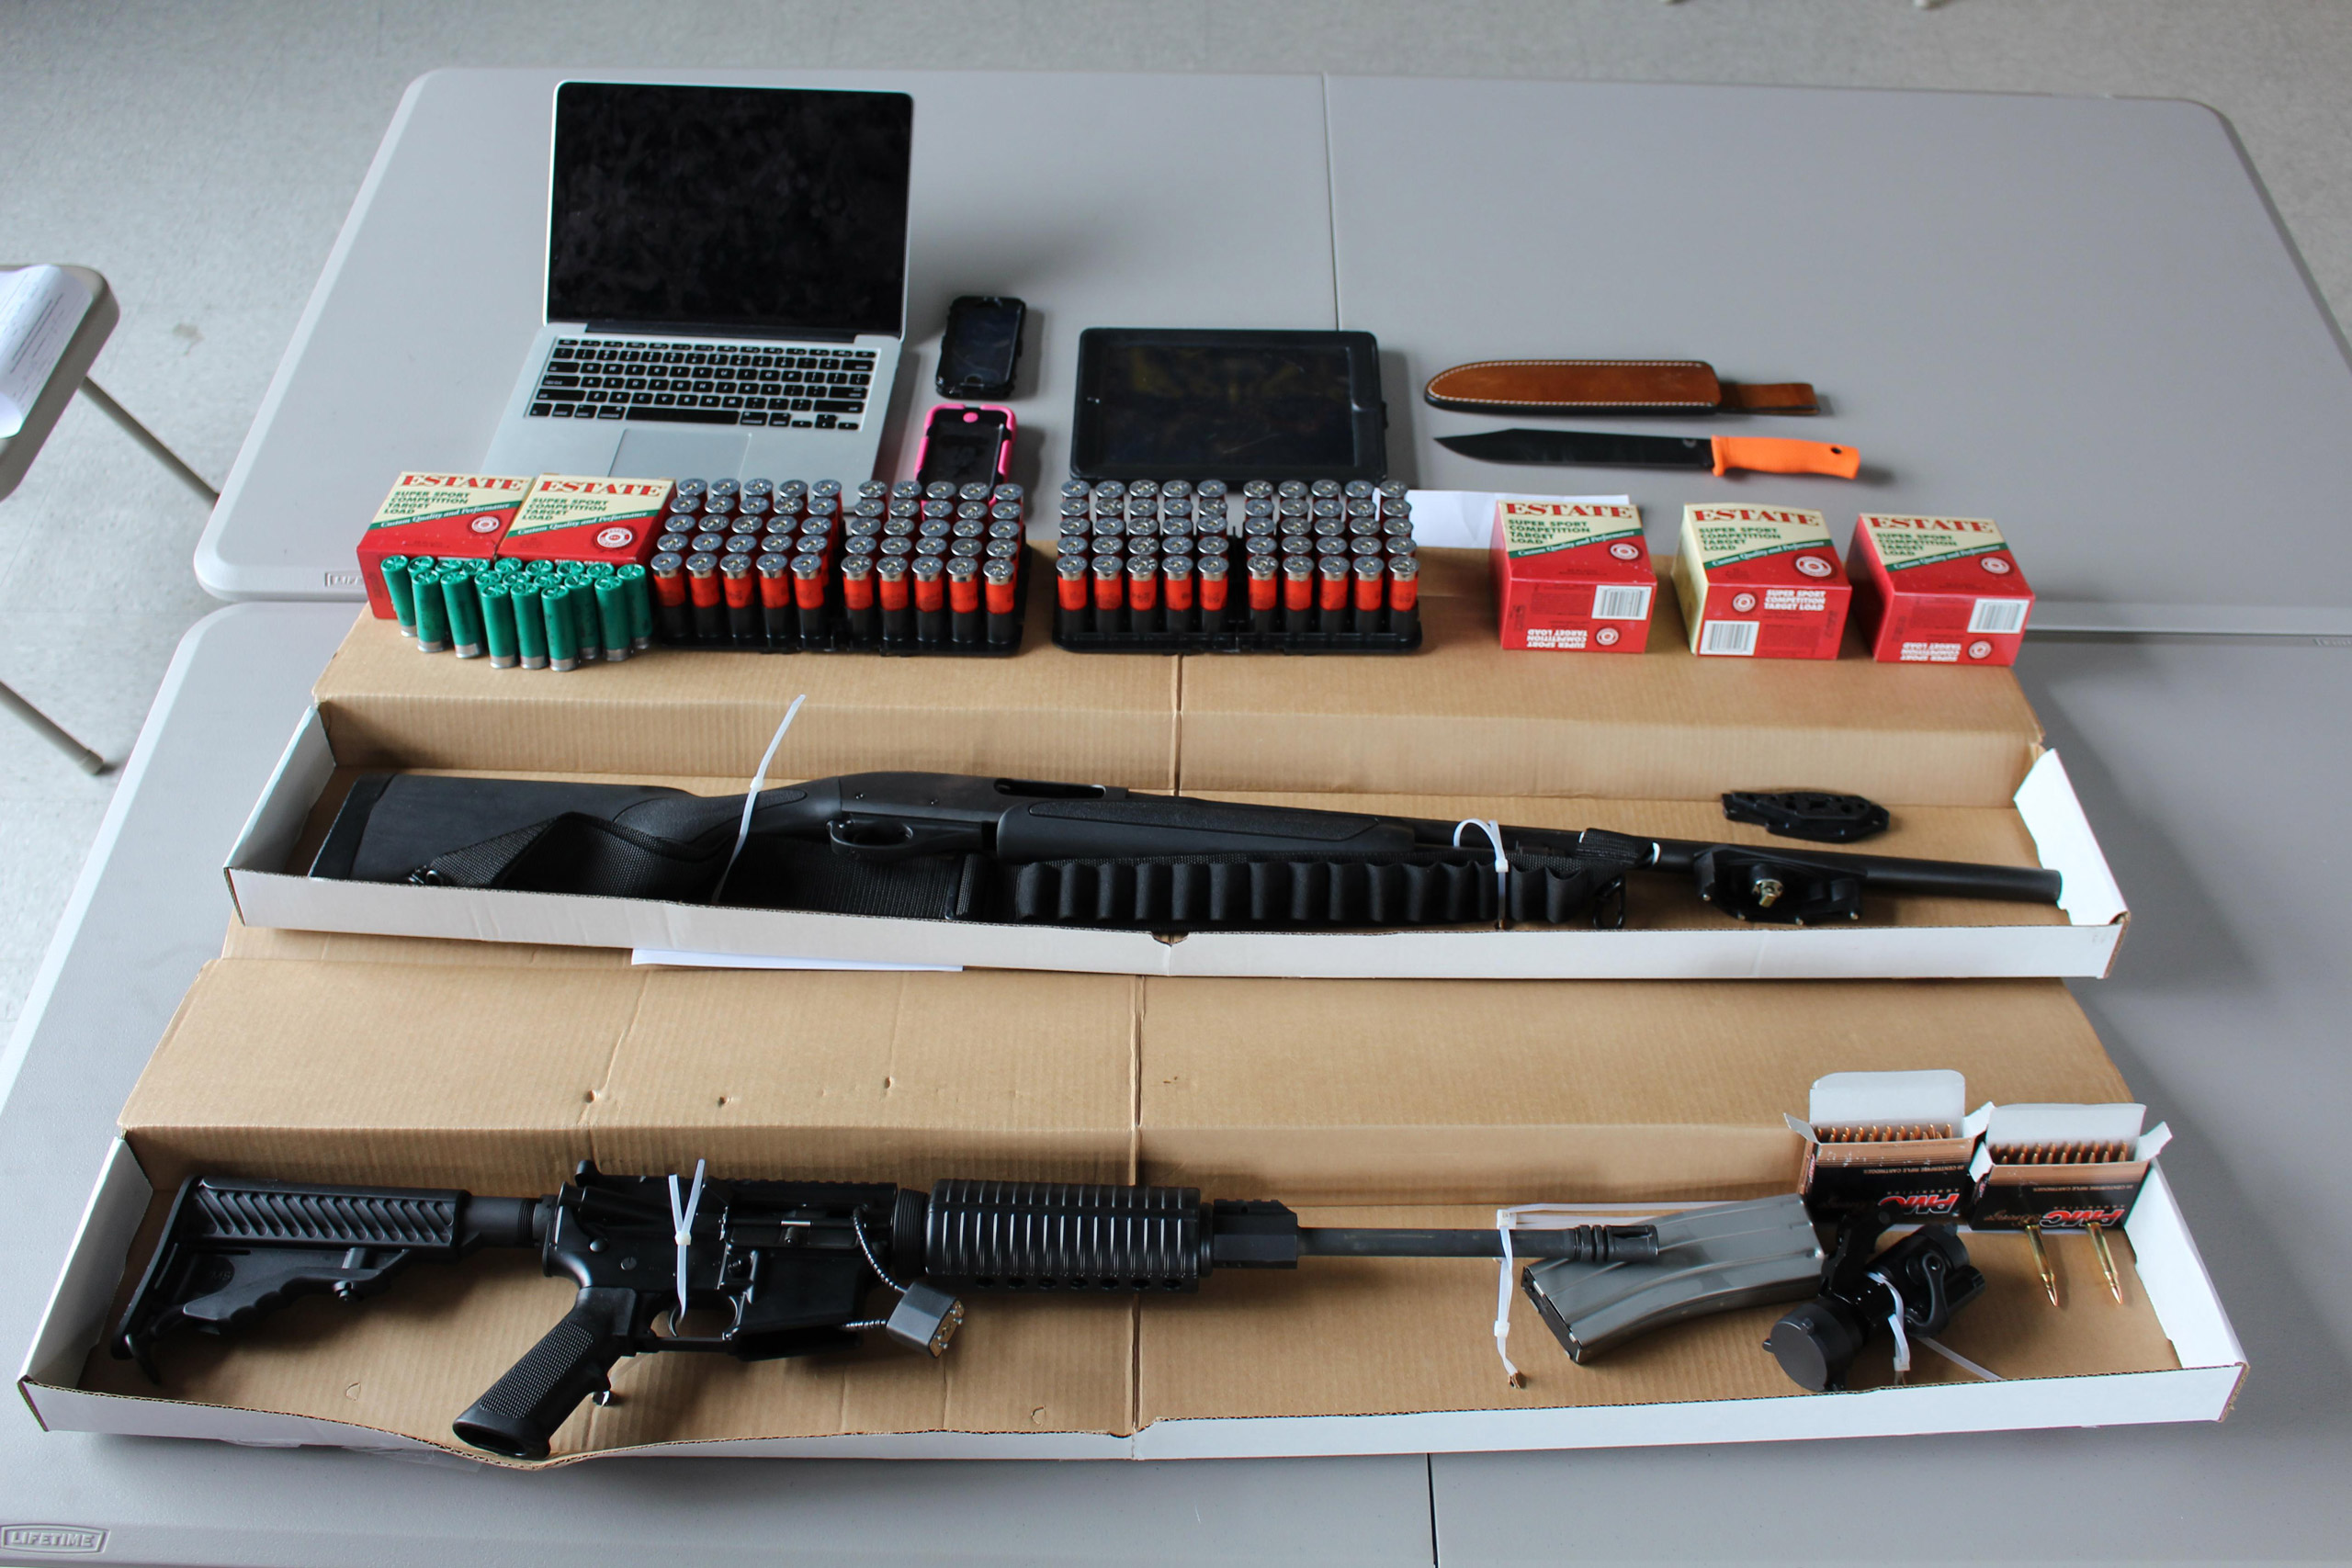 This photo, provided by the Boston Police Department, shows a 12-gauge Remington shotgun, a DPM5 Model AR-15 rifle, several hundred rounds of ammunition, and a hunting knife, confiscated by the police in Boston on Aug. 21, 2015.